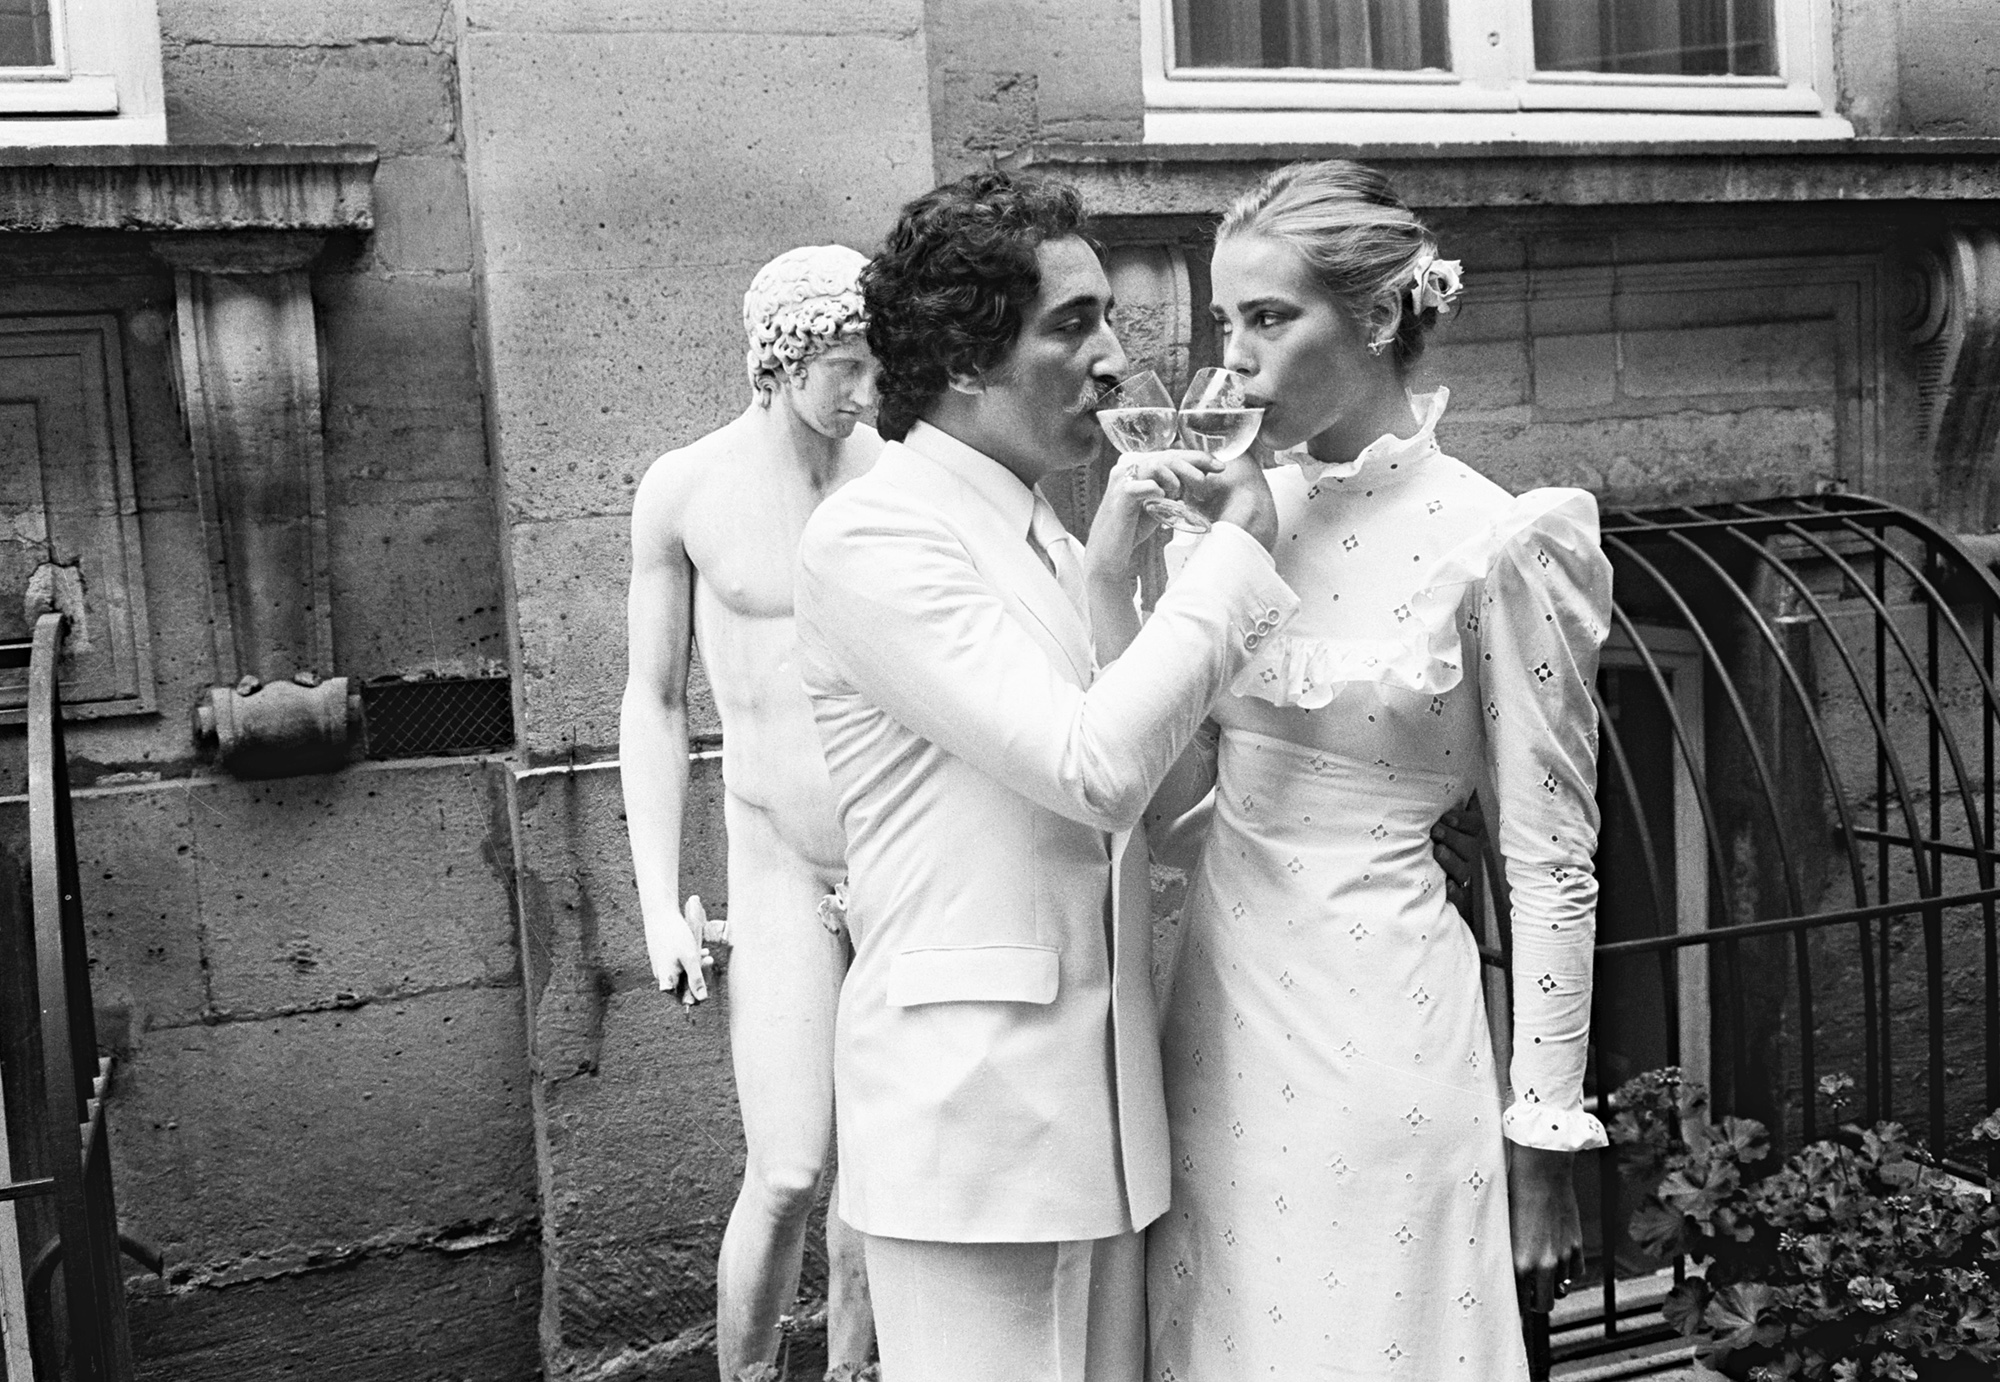 Wedding Of Margaux Hemingway And Erroll Wetson In Paris - 1975Margaux Hemingway gets married with Erroll Wetson in Paris in Jun 1975. (Photo by Bertrand Rindoff Petroff/Getty Images)